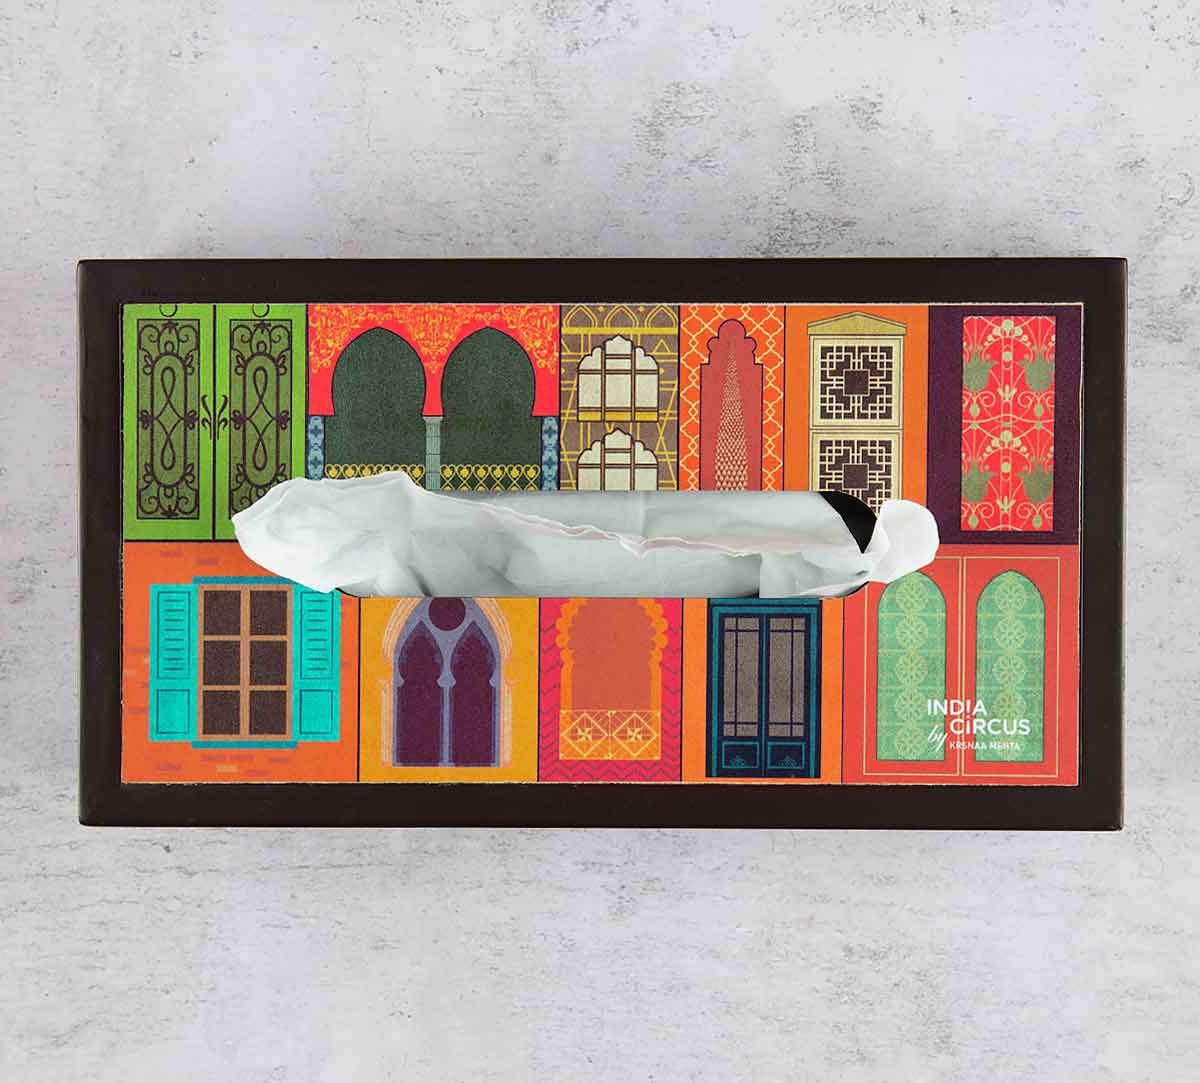 fa1ccc293 India Circus Mughal Doors Reiteration MDF Tissue Box Holder. Tap to expand